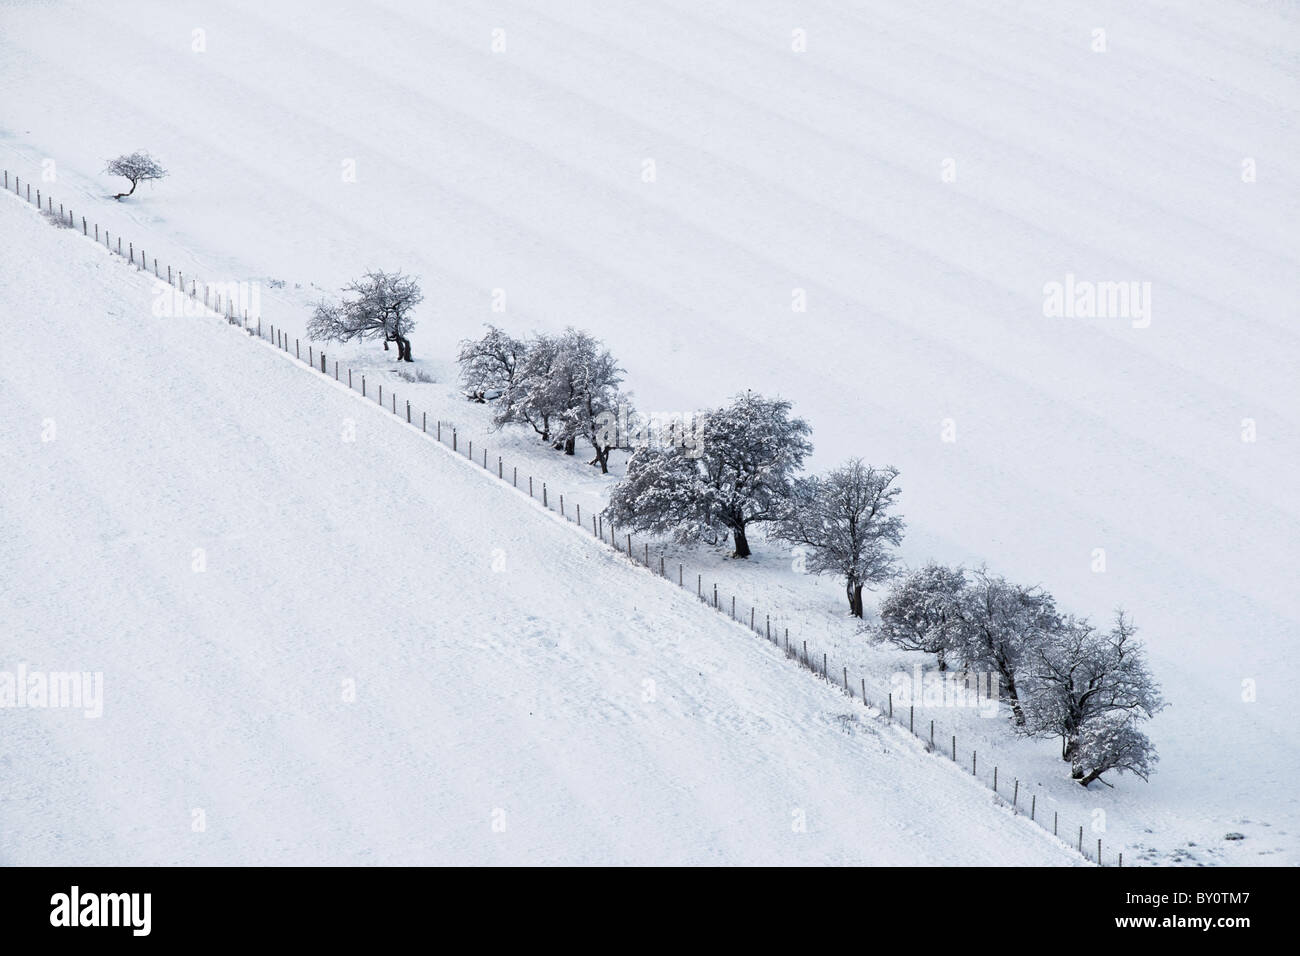 Fenced fields and small trees in snow, Scotland, UK. Showing runrig pattern. - Stock Image